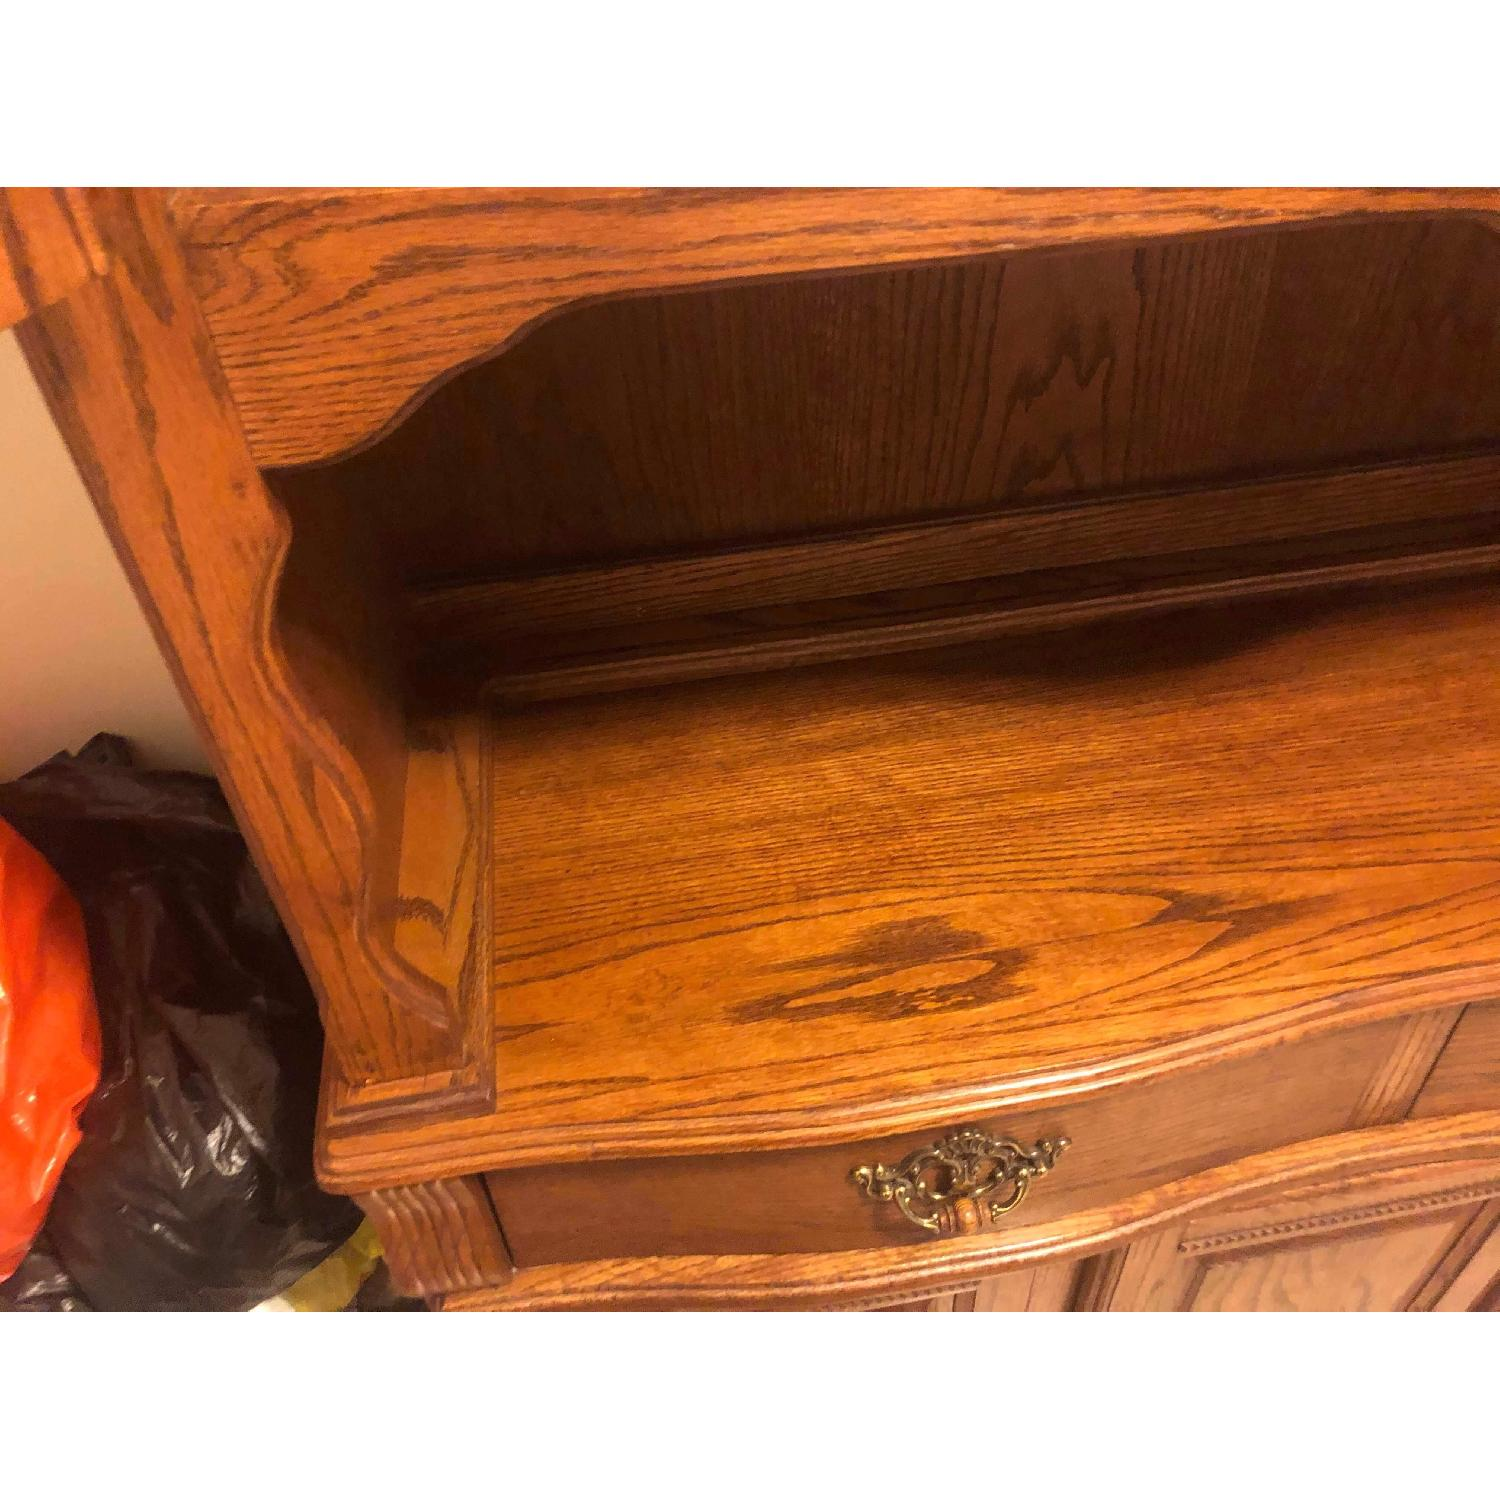 Solid Wood Early American Style Hutch w/ Lights - image-6